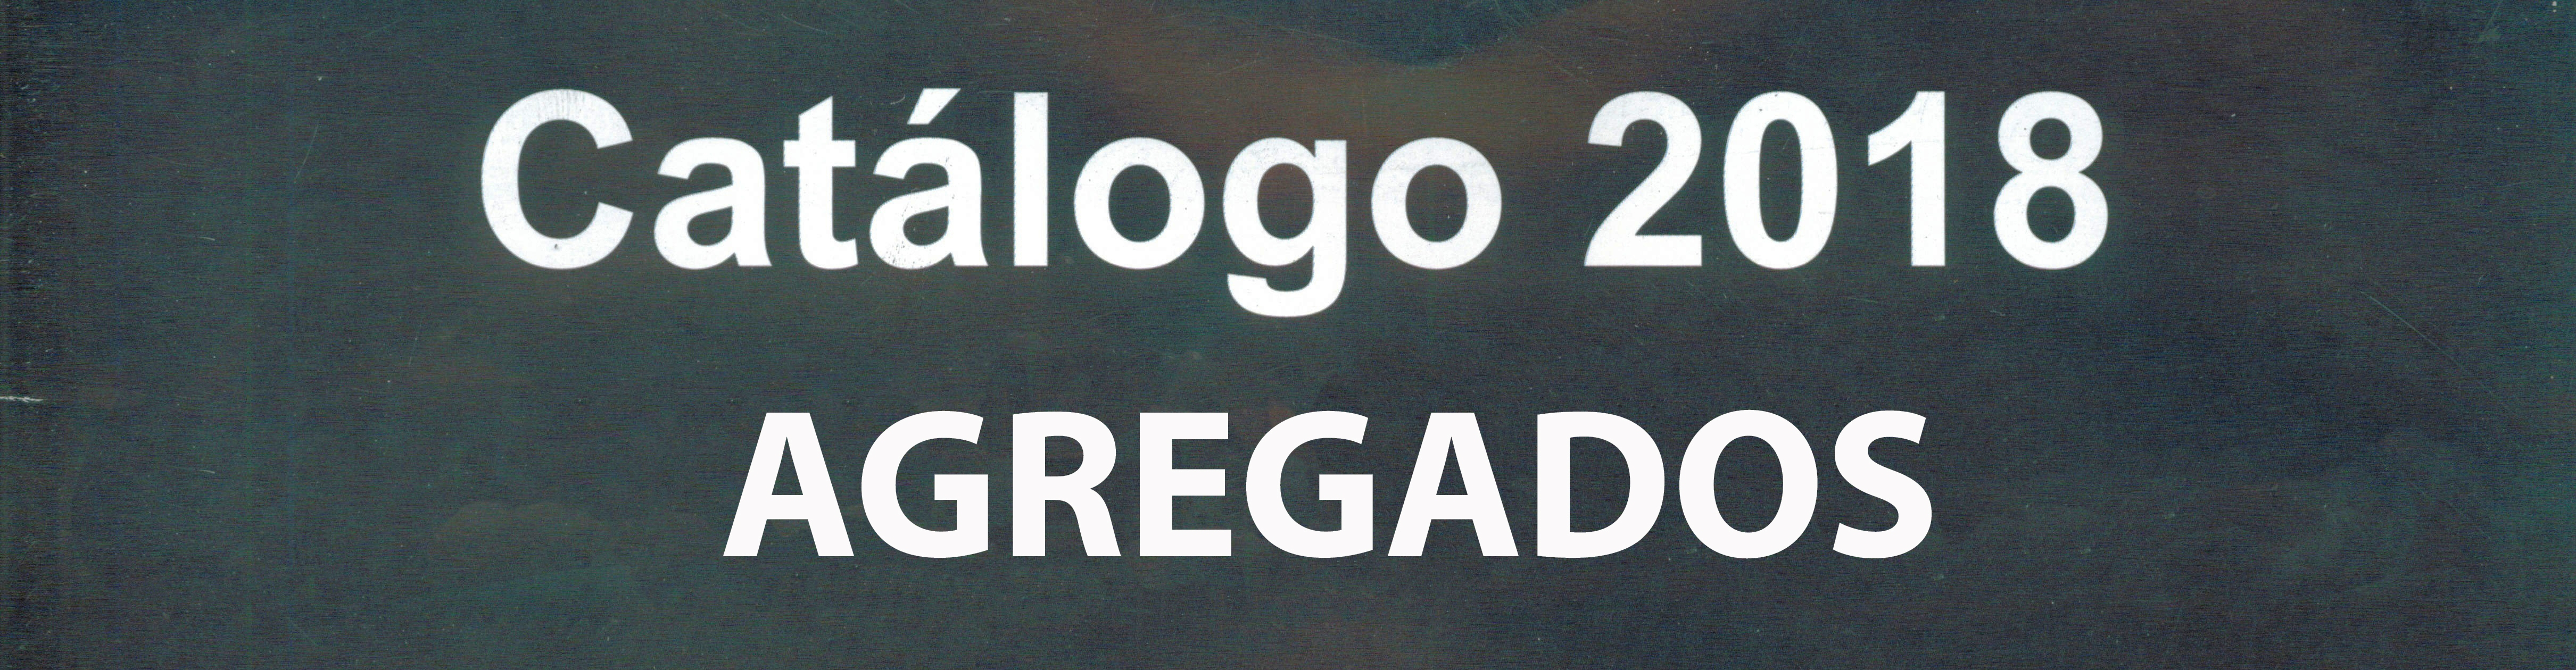 AGREGADOS CATALOGO 2018 (FEBRERO 2019)